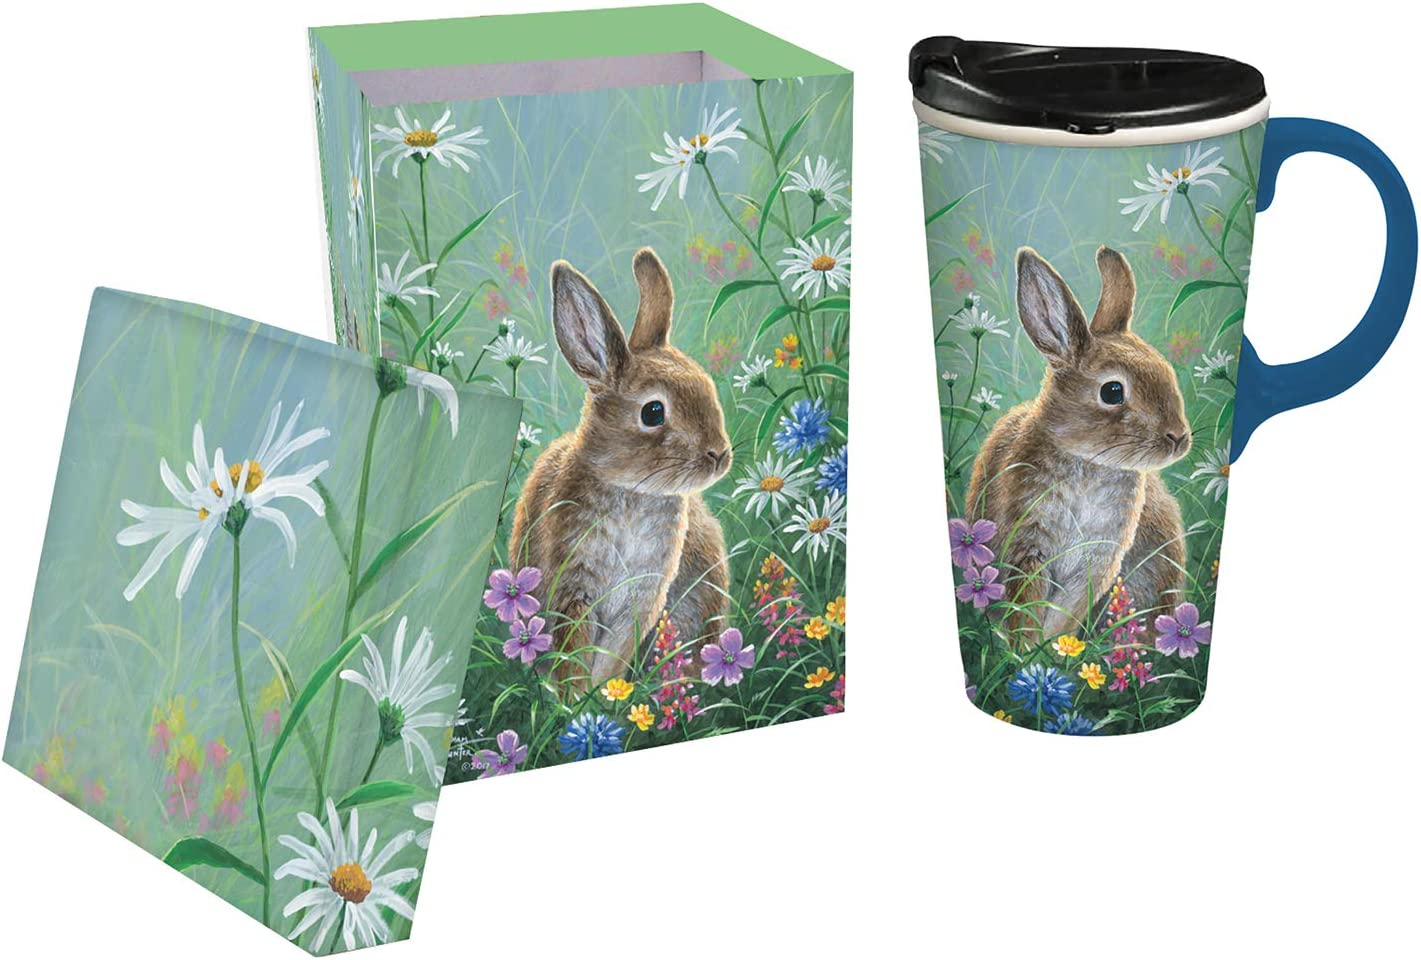 Spring Bunny Ceramic Travel Cup - 4 x 5 x 7 Inches